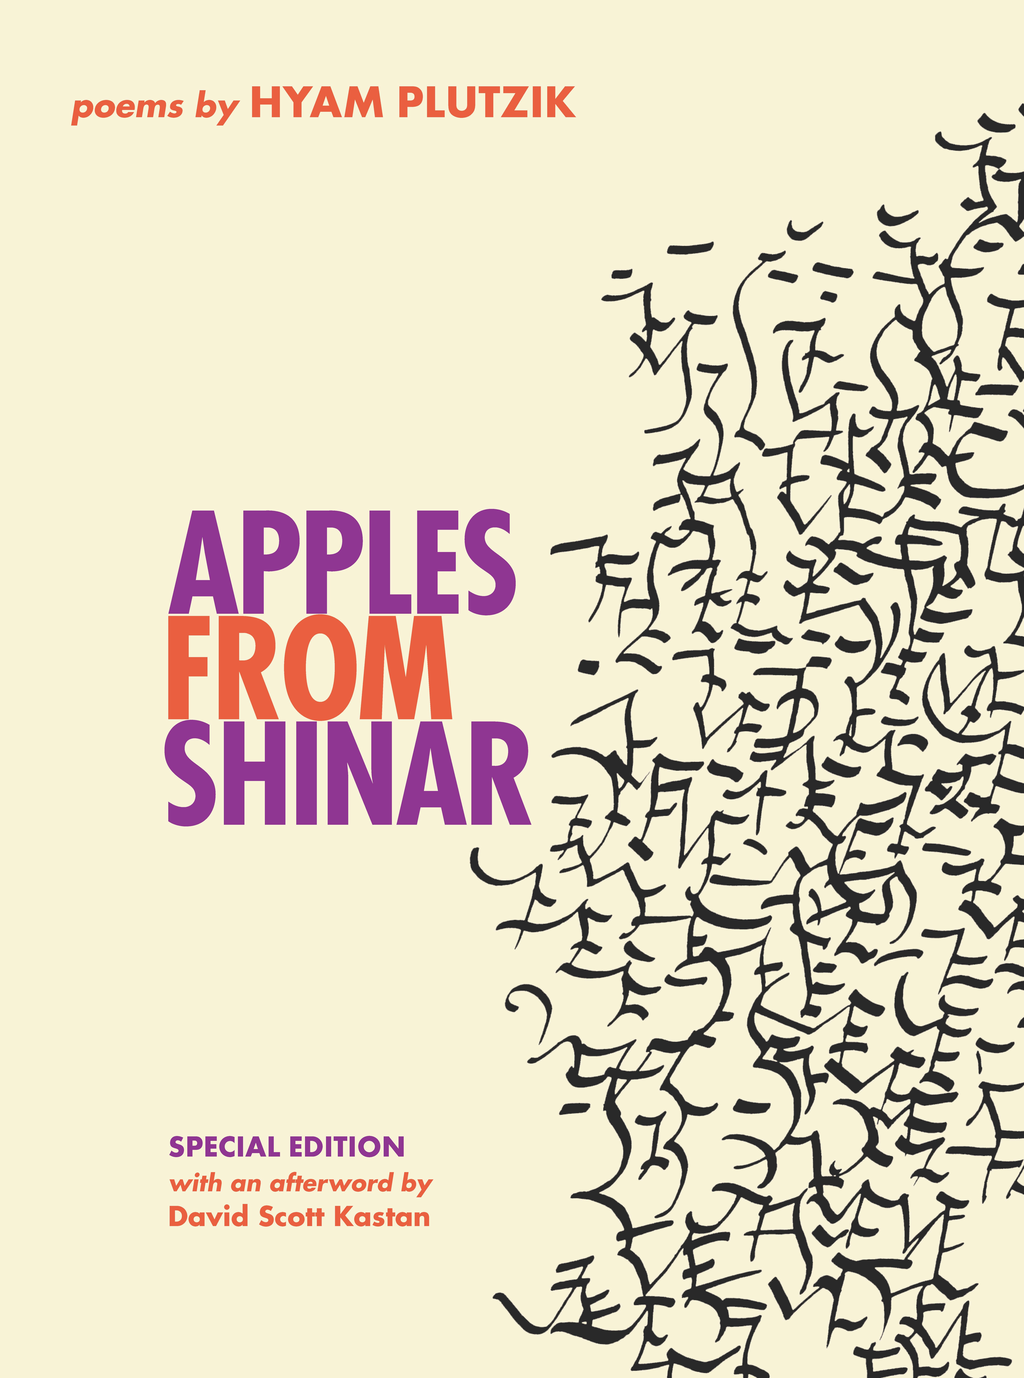 Apples from Shinar